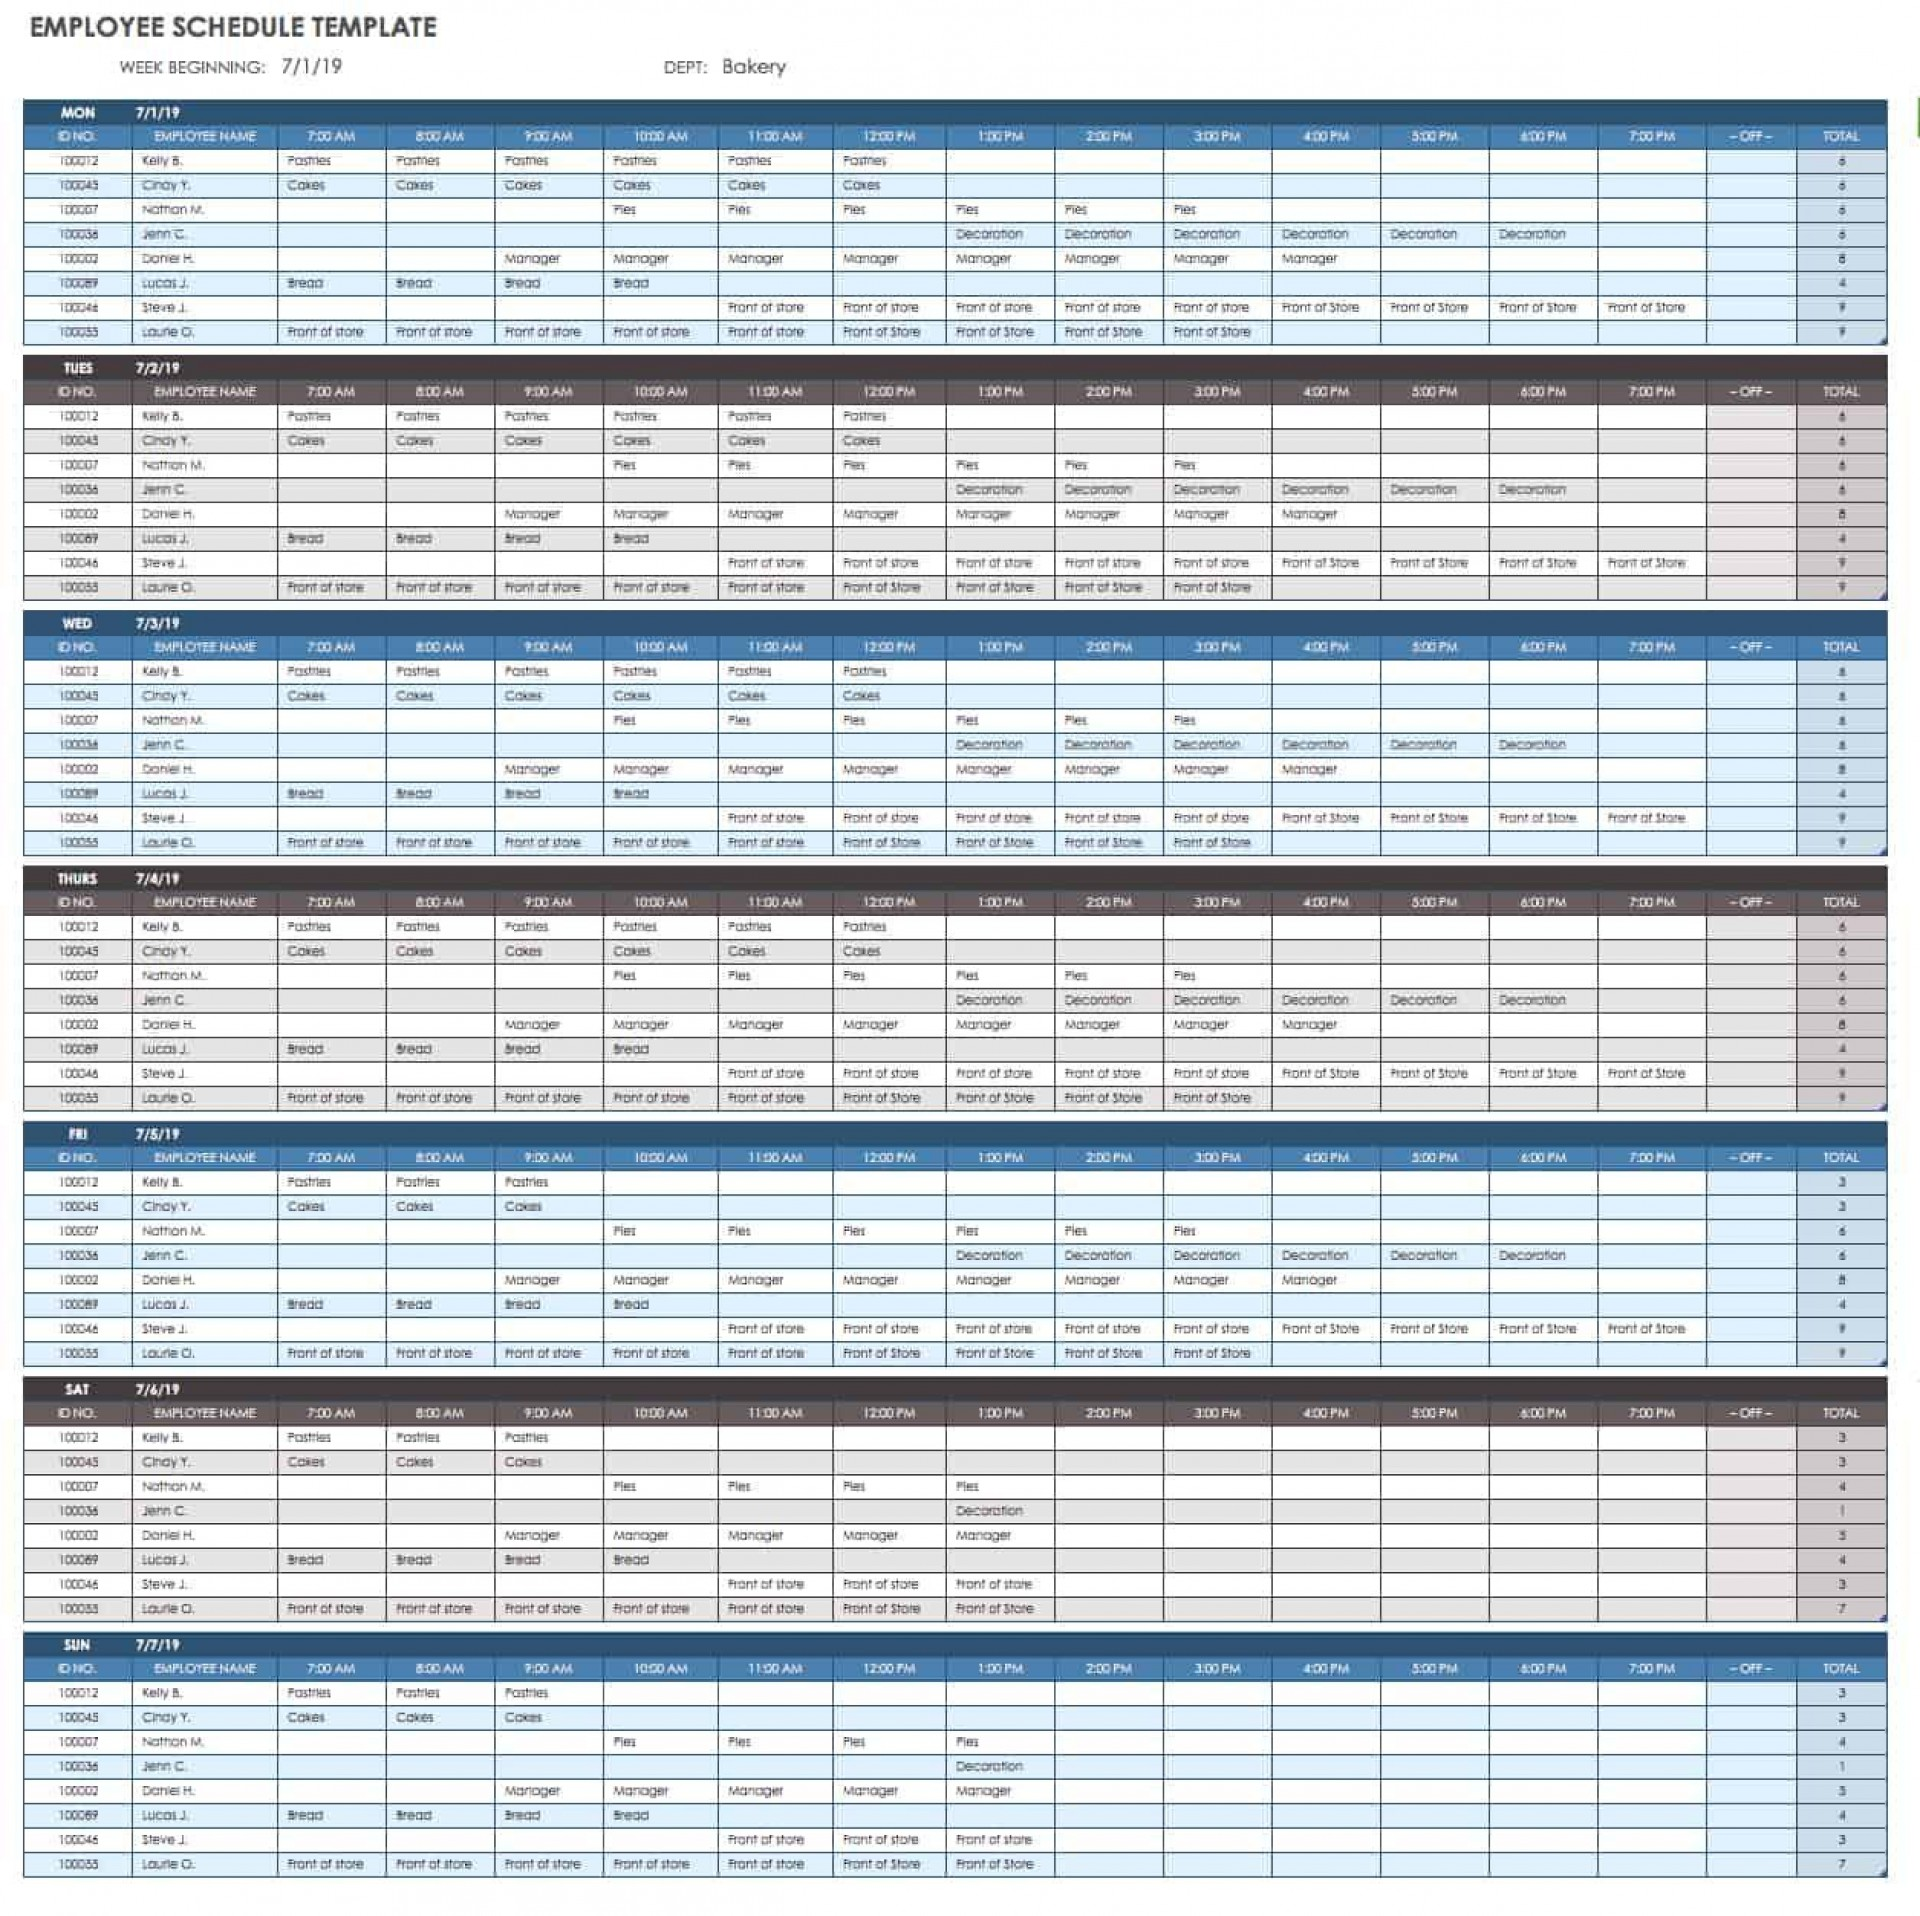 007 Staggering Employee Calendar Template Excel Sample  Staff Leave Vacation Planner1920